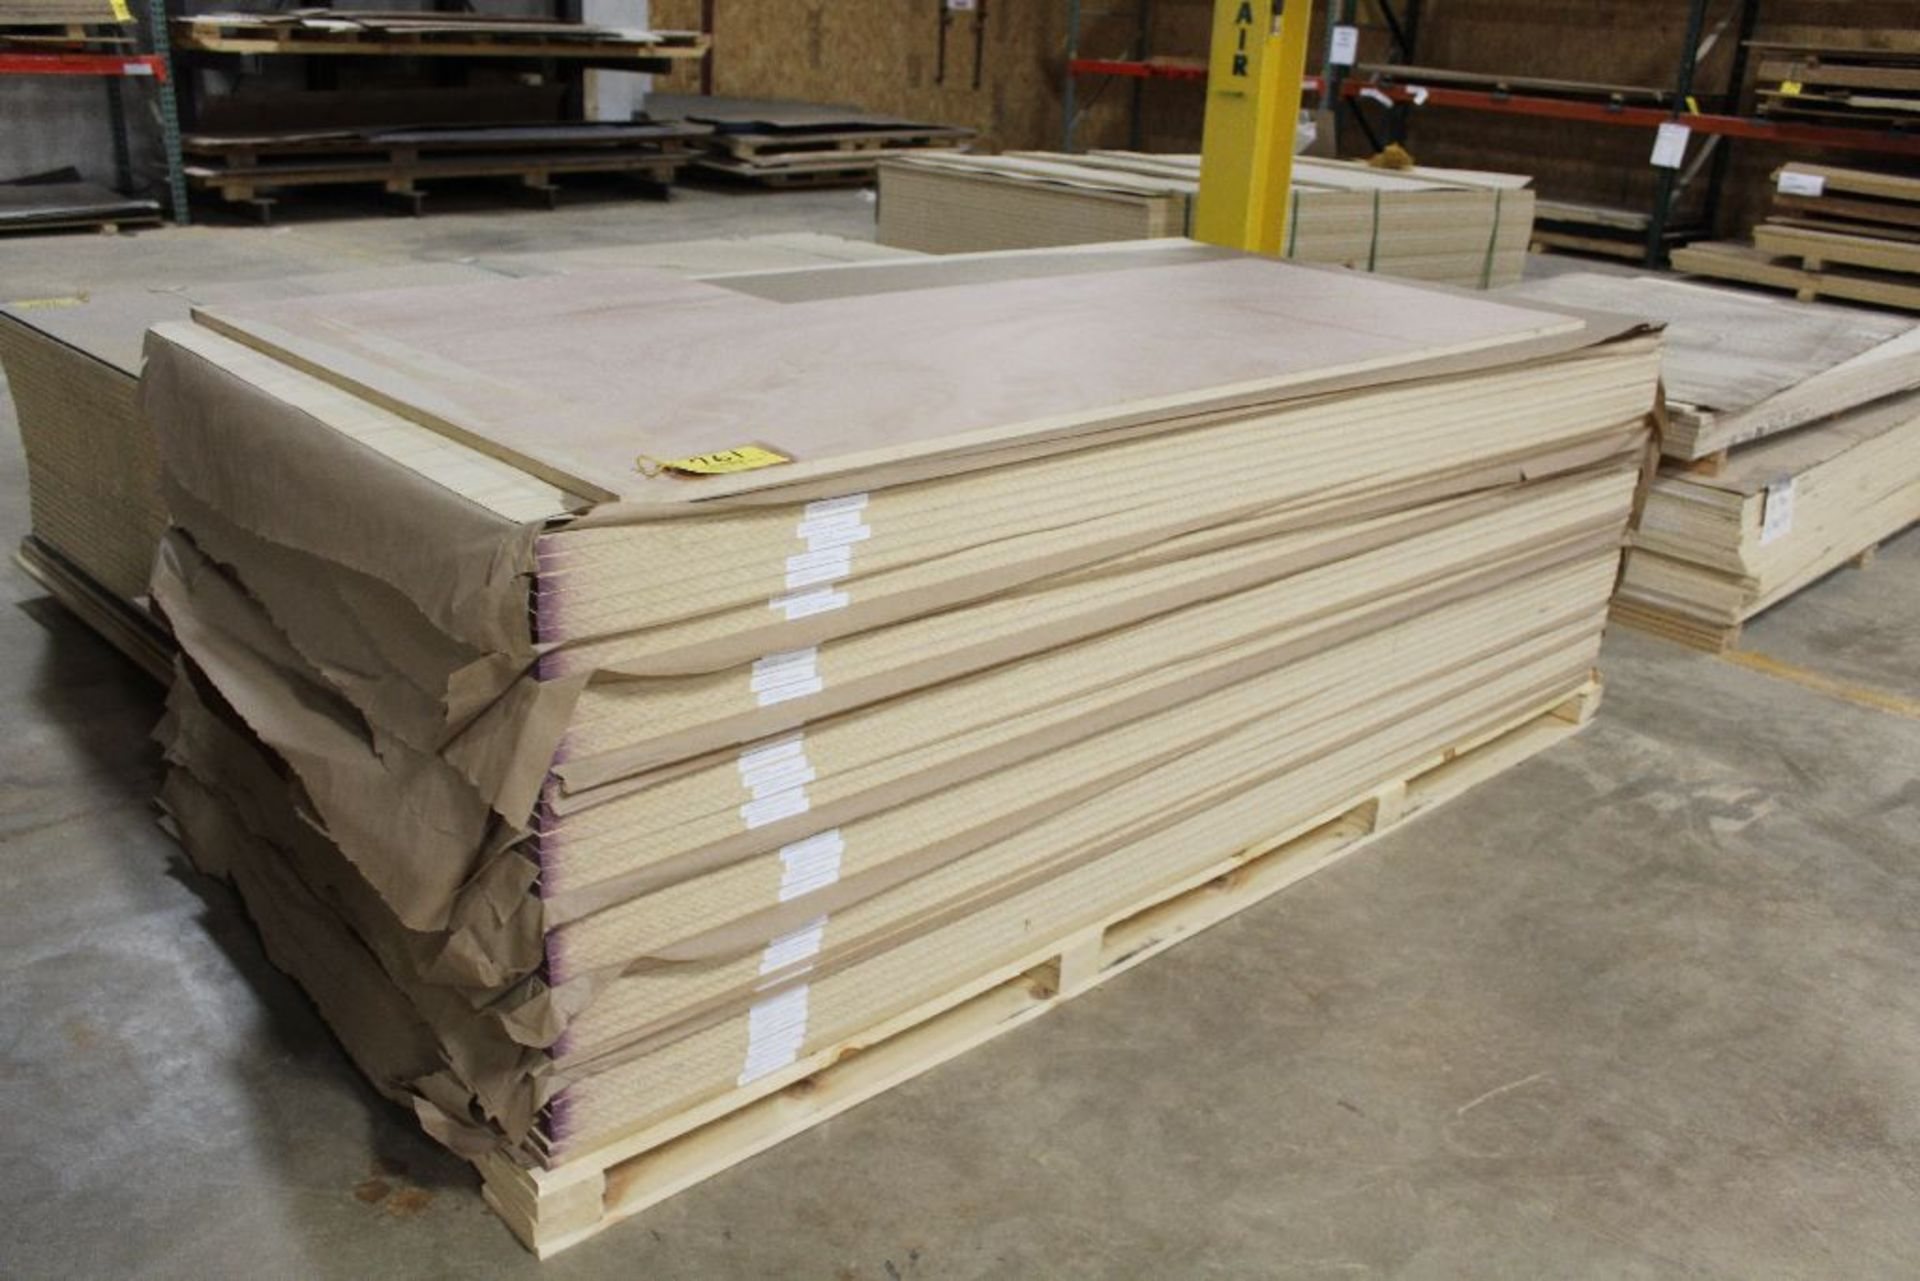 "Lot 761 - Lumber, plywood A-4 Pine PS plain, 3/4"" x 48"" x 96""."